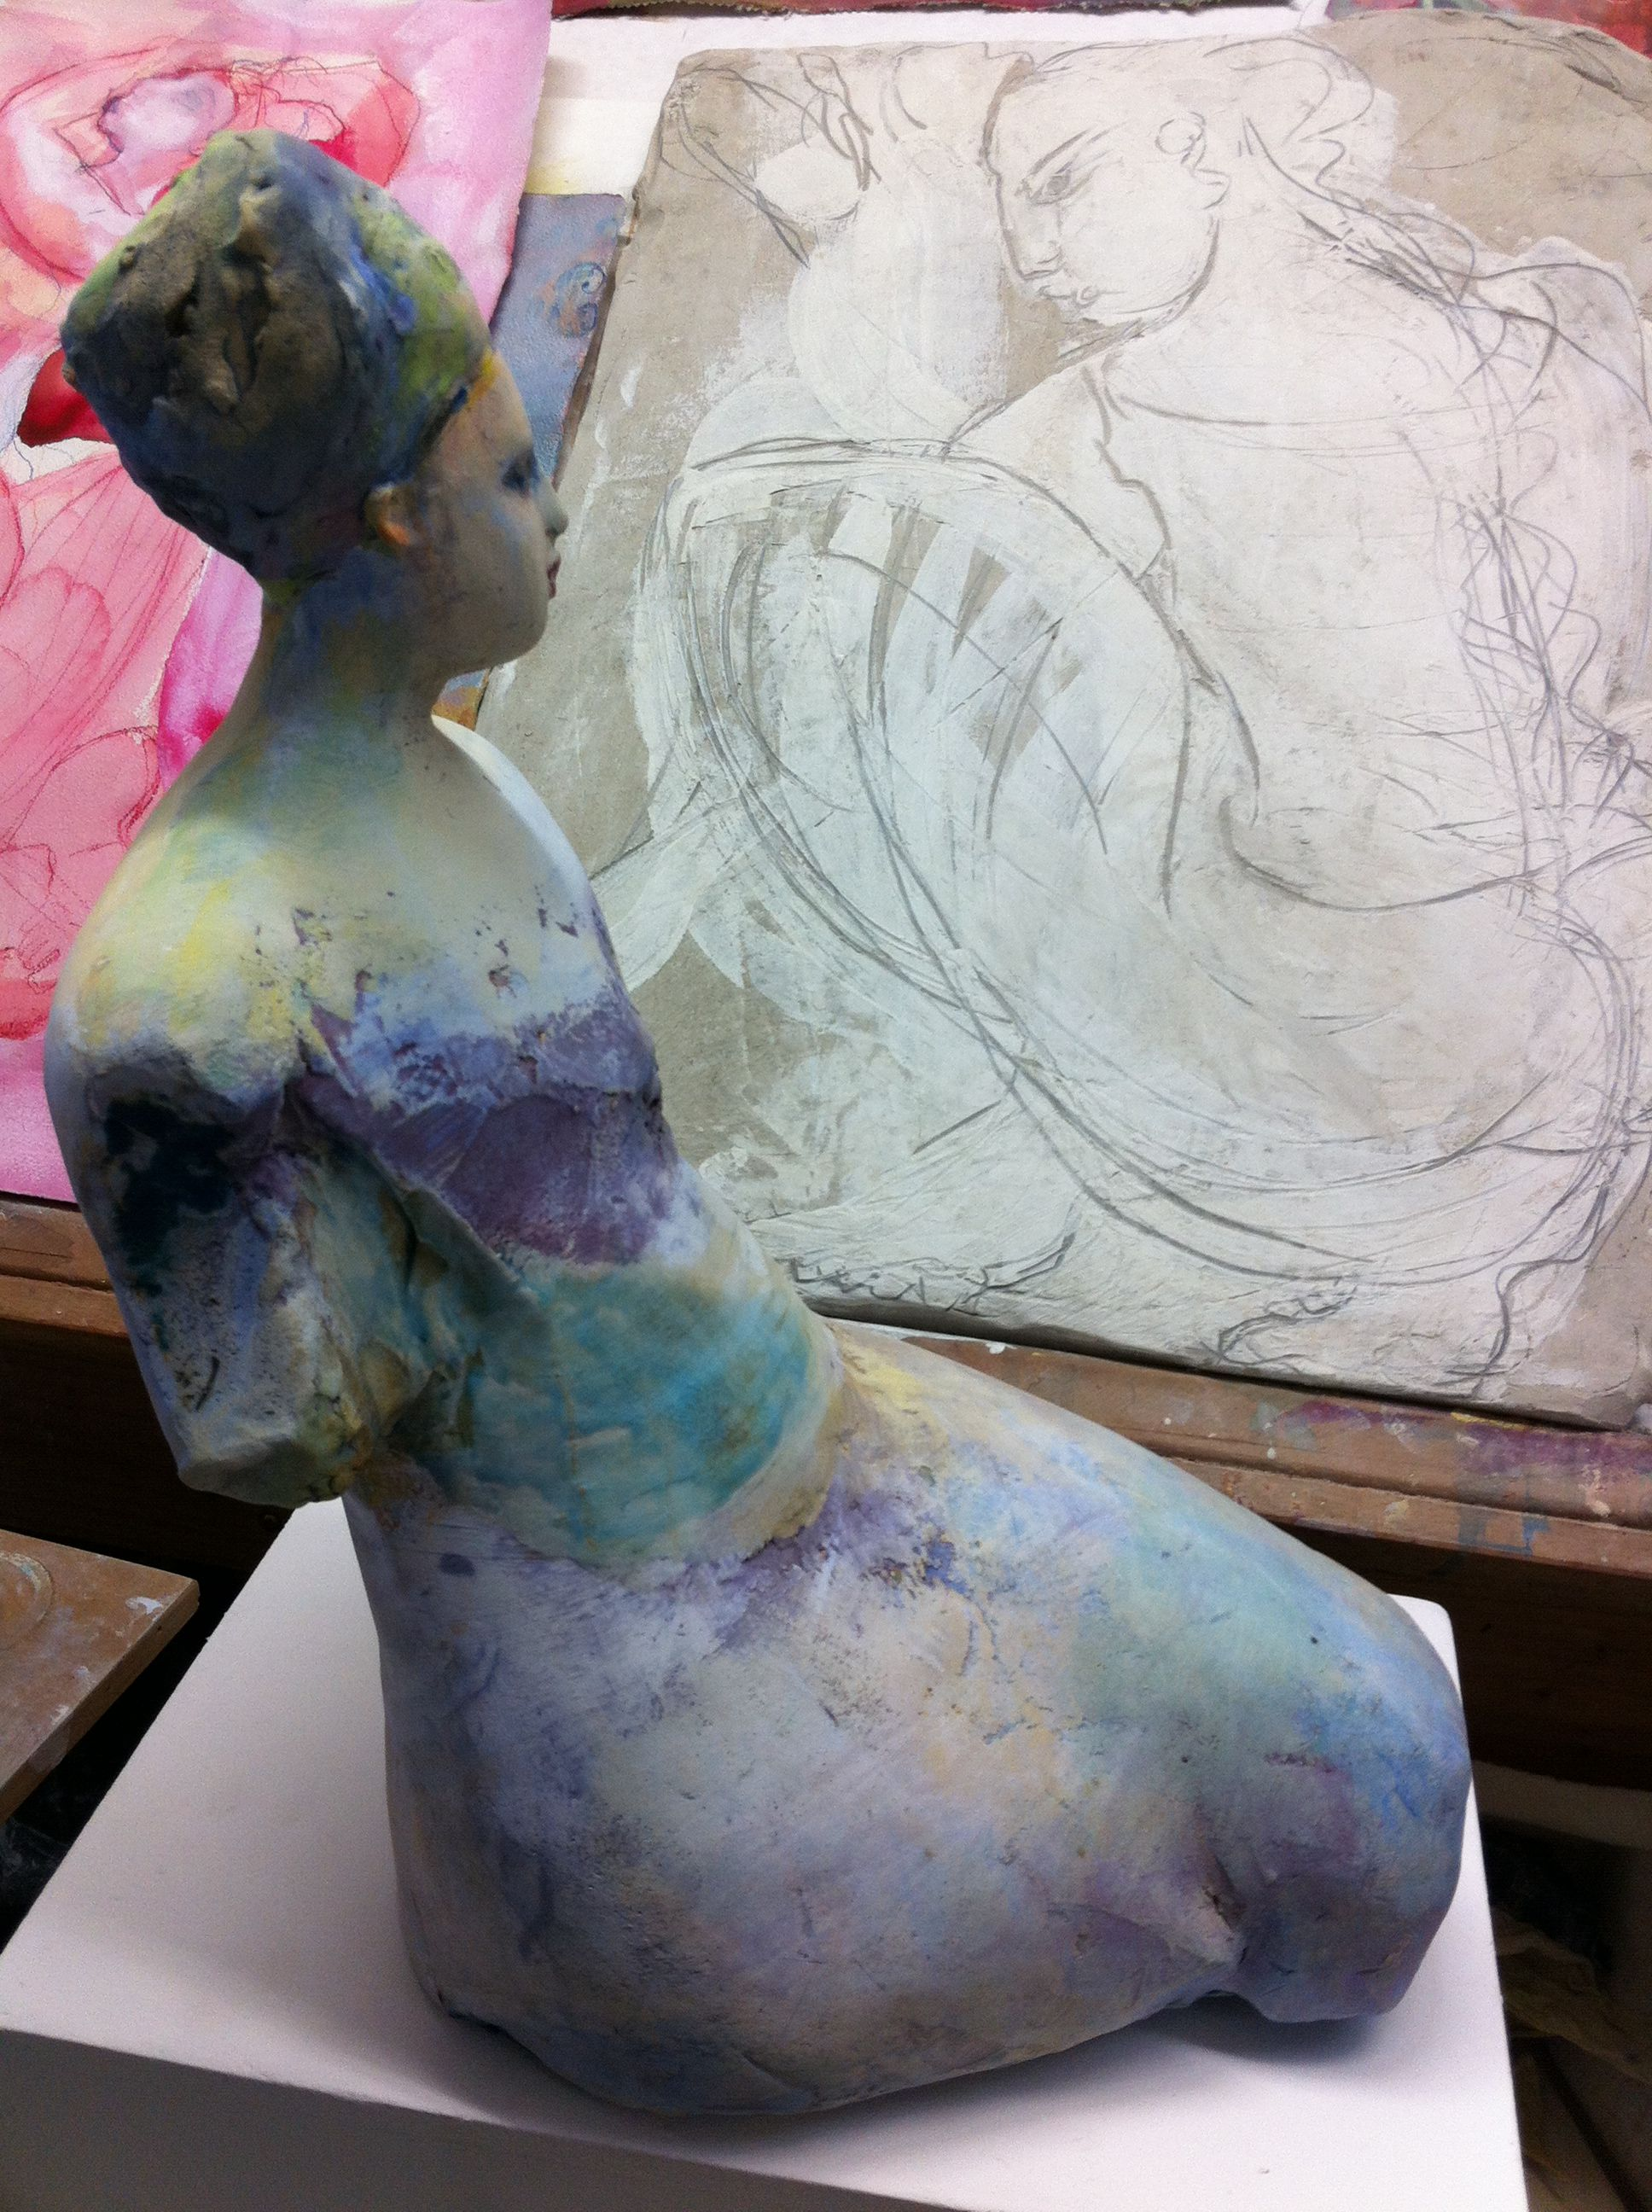 Michelle Gregor. Studio view, September 12, 2012.